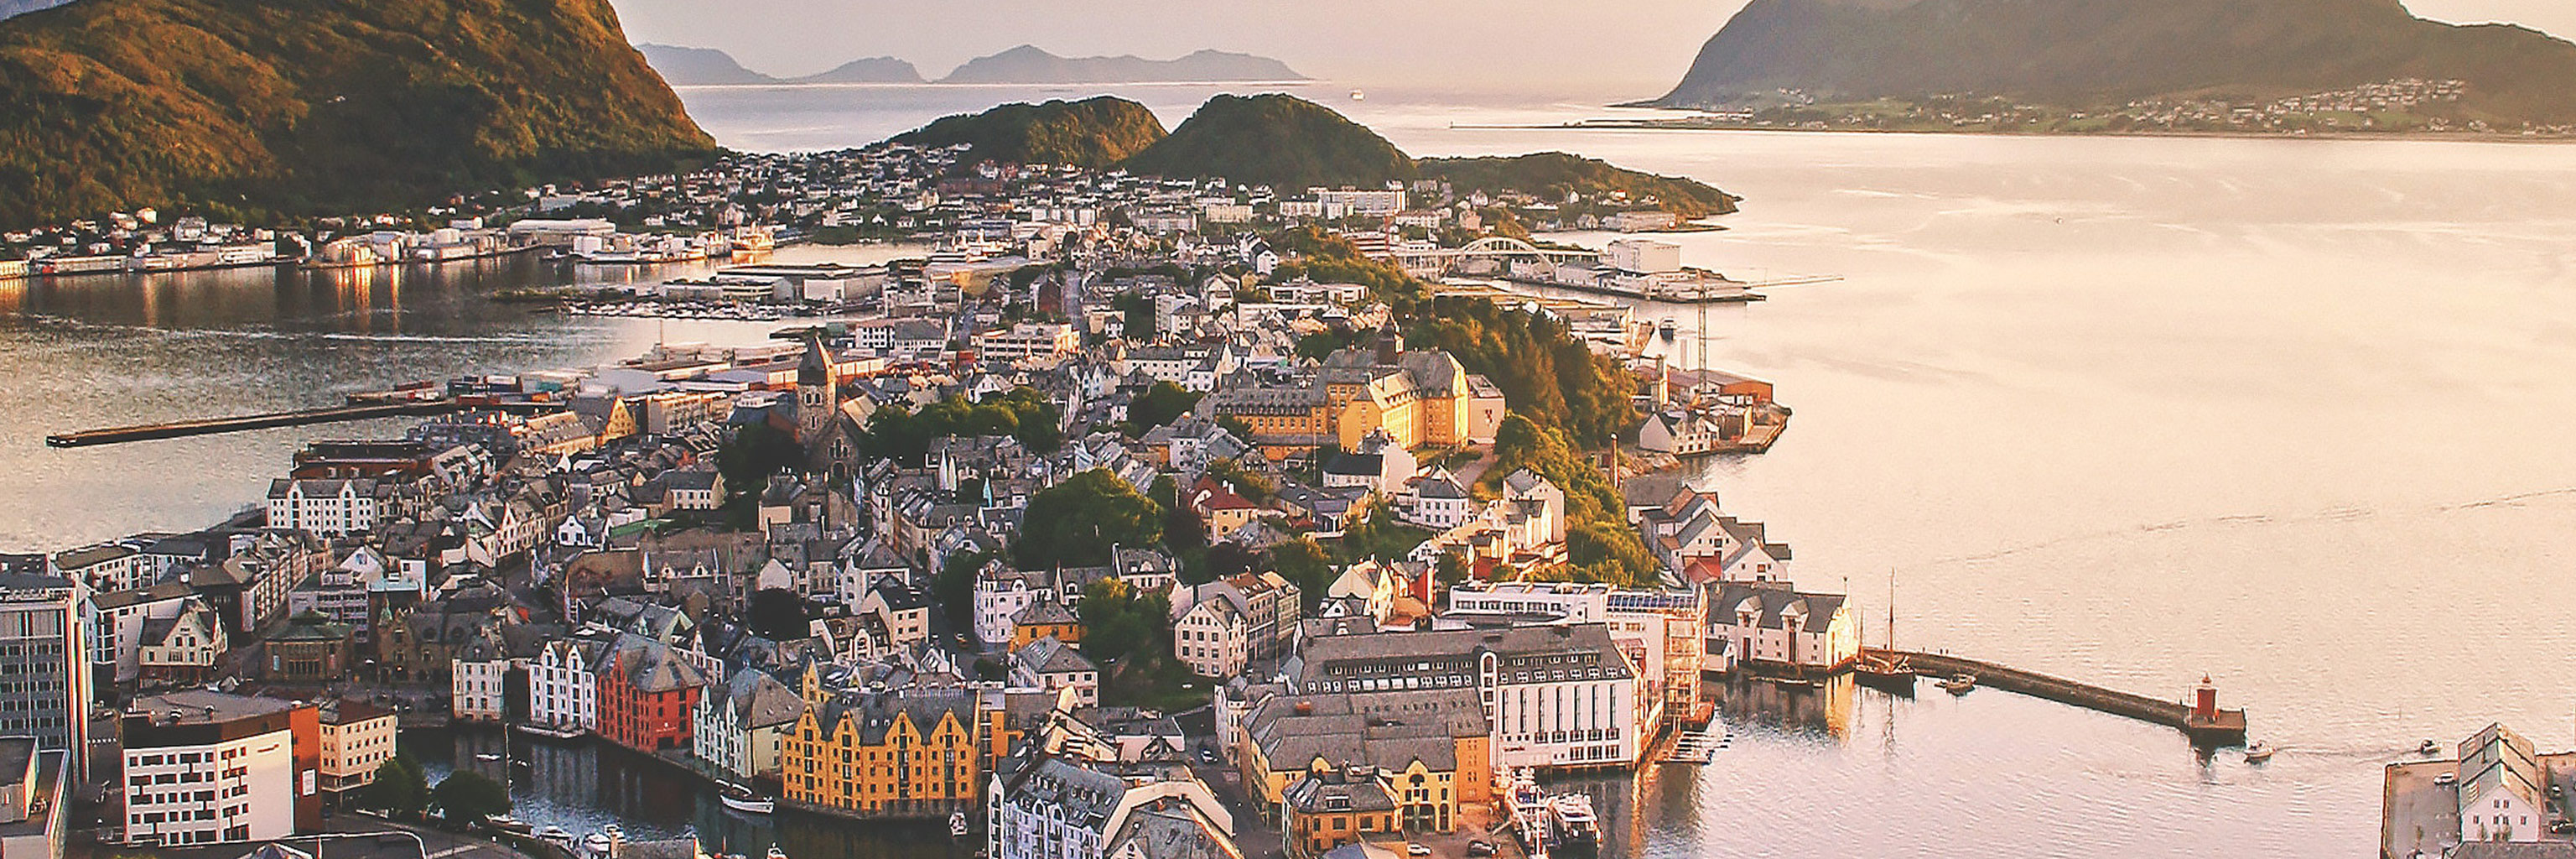 City in Norway